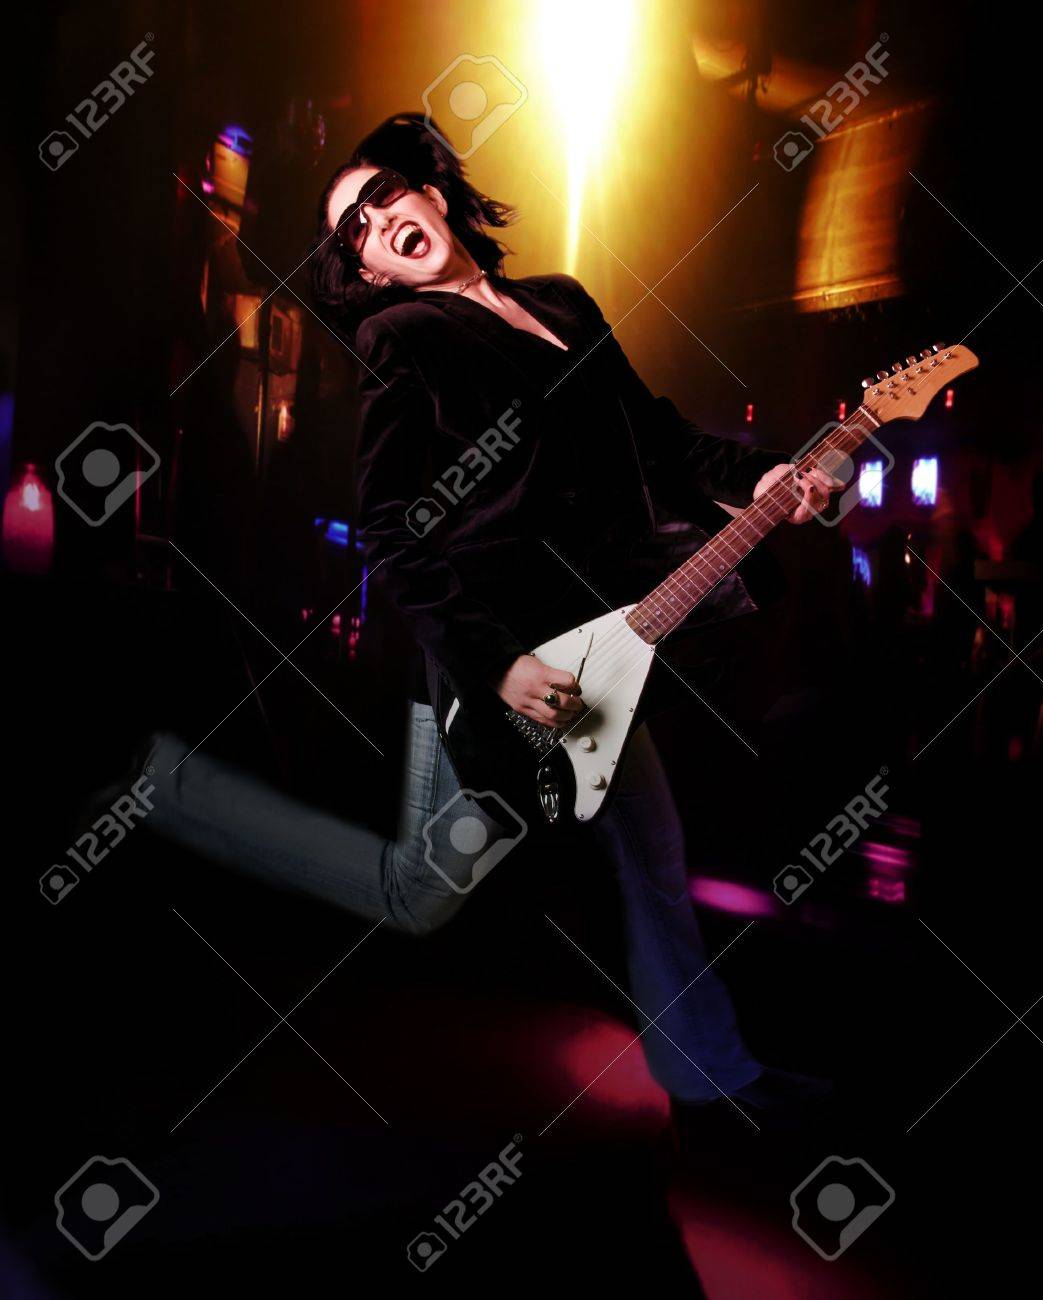 Female Lead Guitarist With Electric Guitar Jumping On Stage Stock Photo